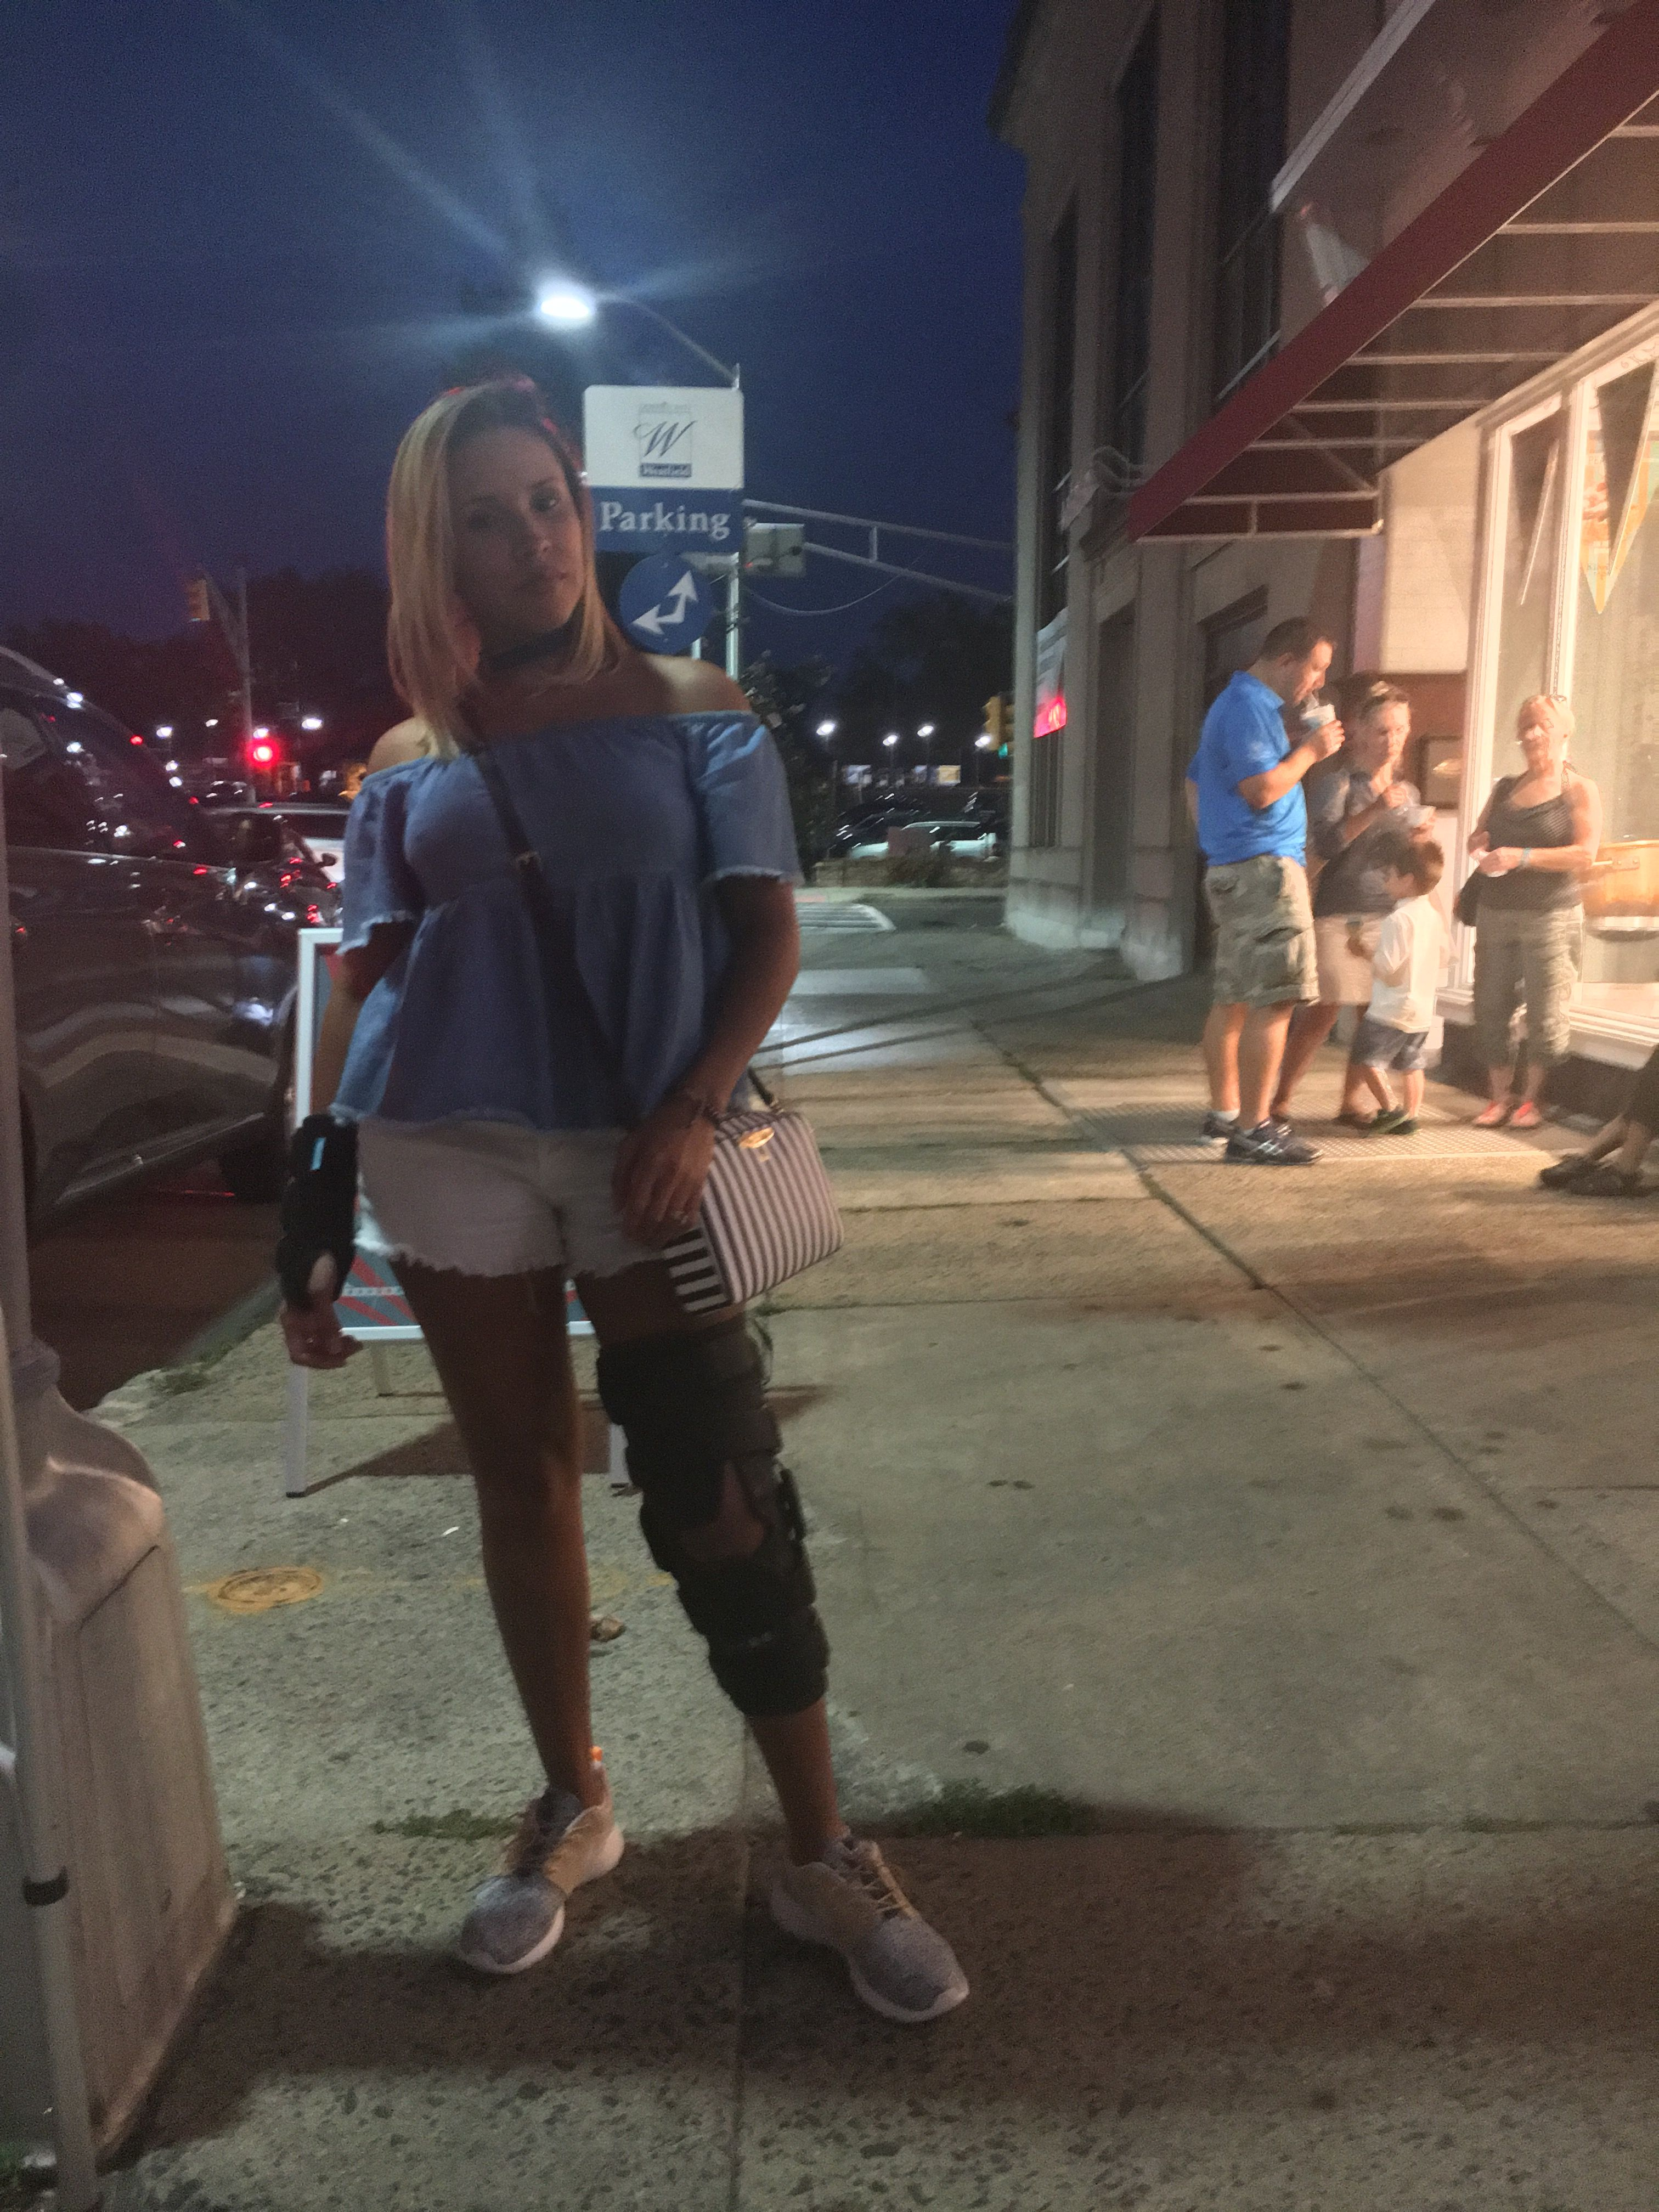 c9b127e06be88 Outfitting ideas wearing a knee brace. Outfits. Outfit ideas. Knee ...